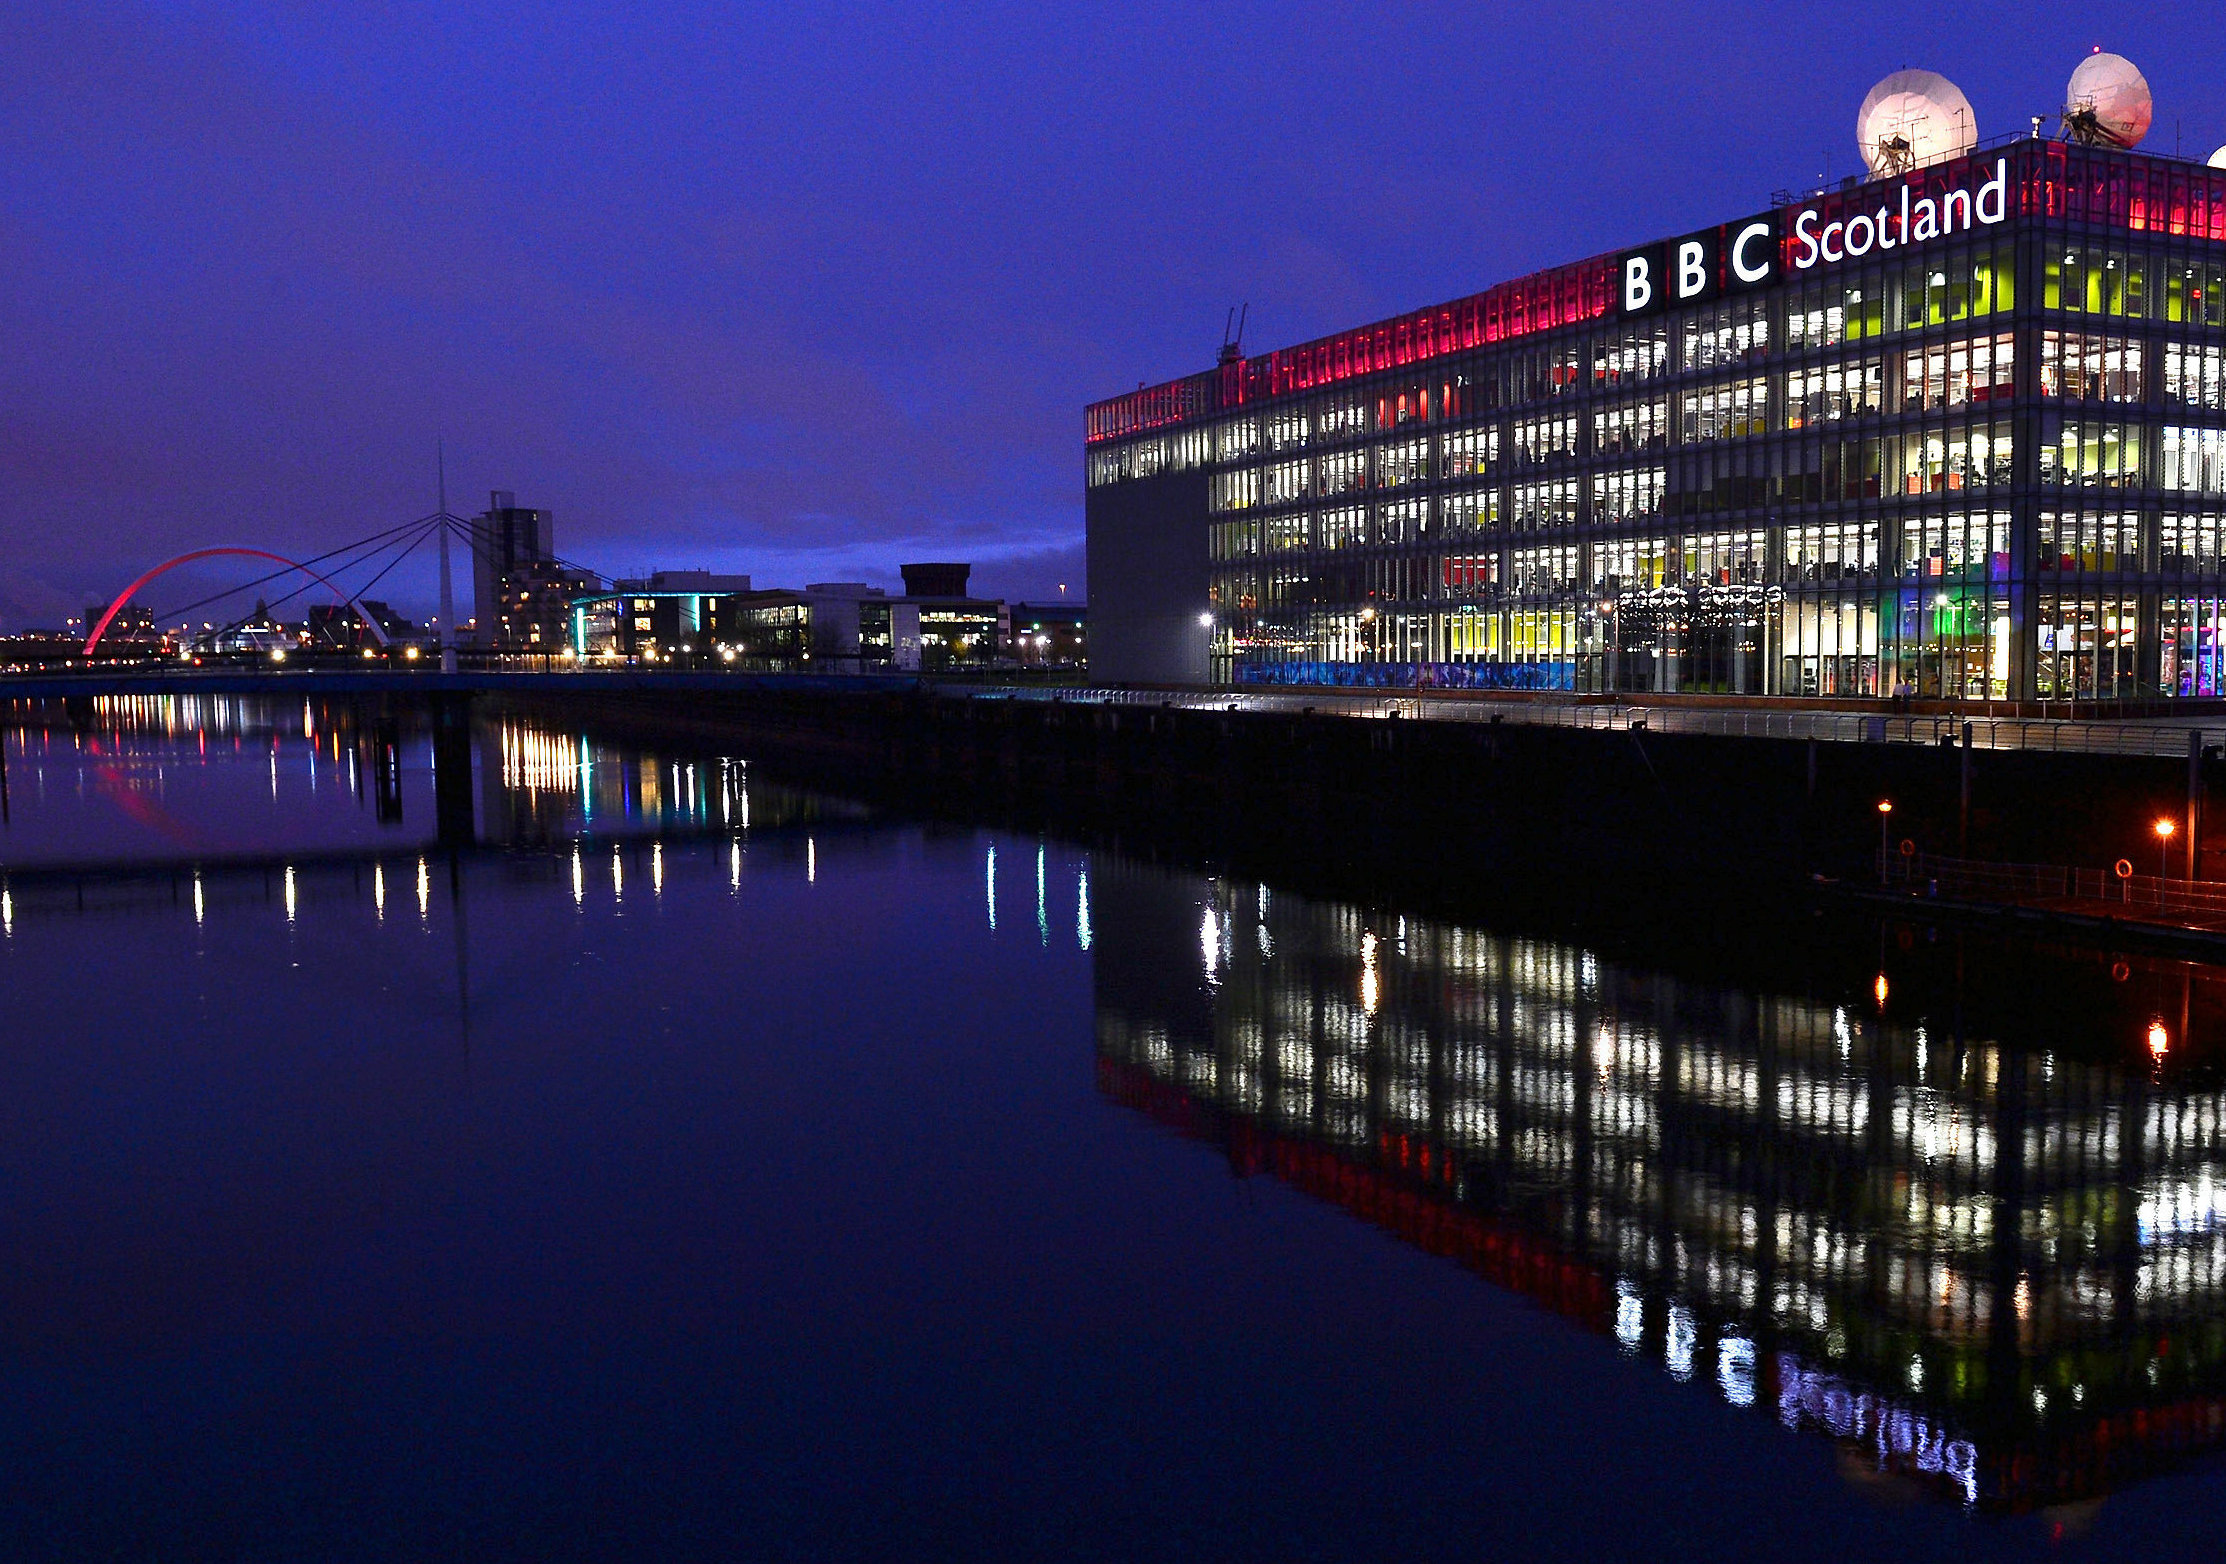 The new BBC Scotland channel must show it is different